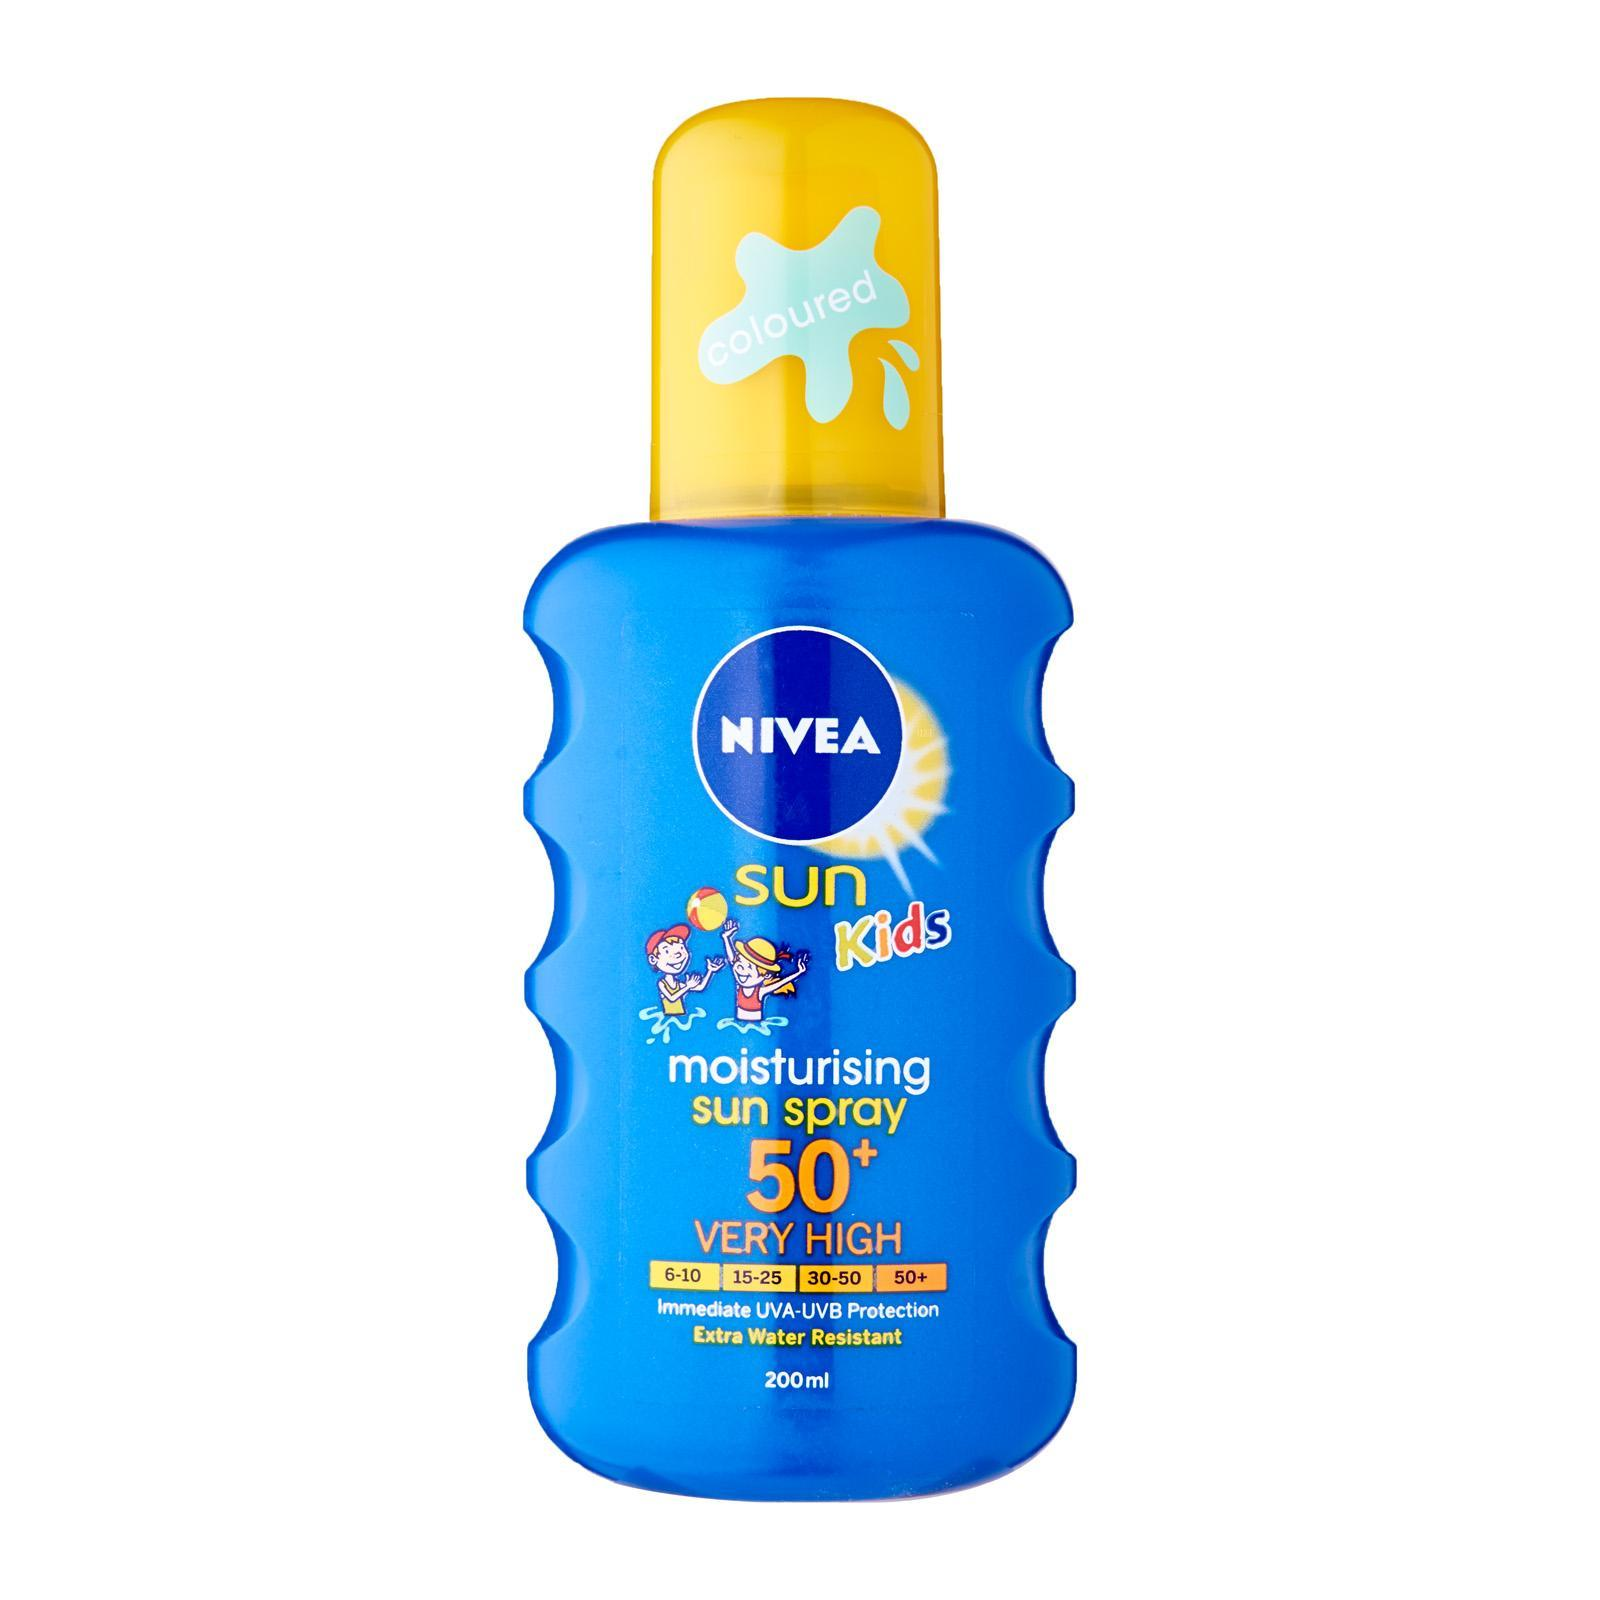 Nivea Sun Care Unisex Spray Kid's Spray SPF 50+